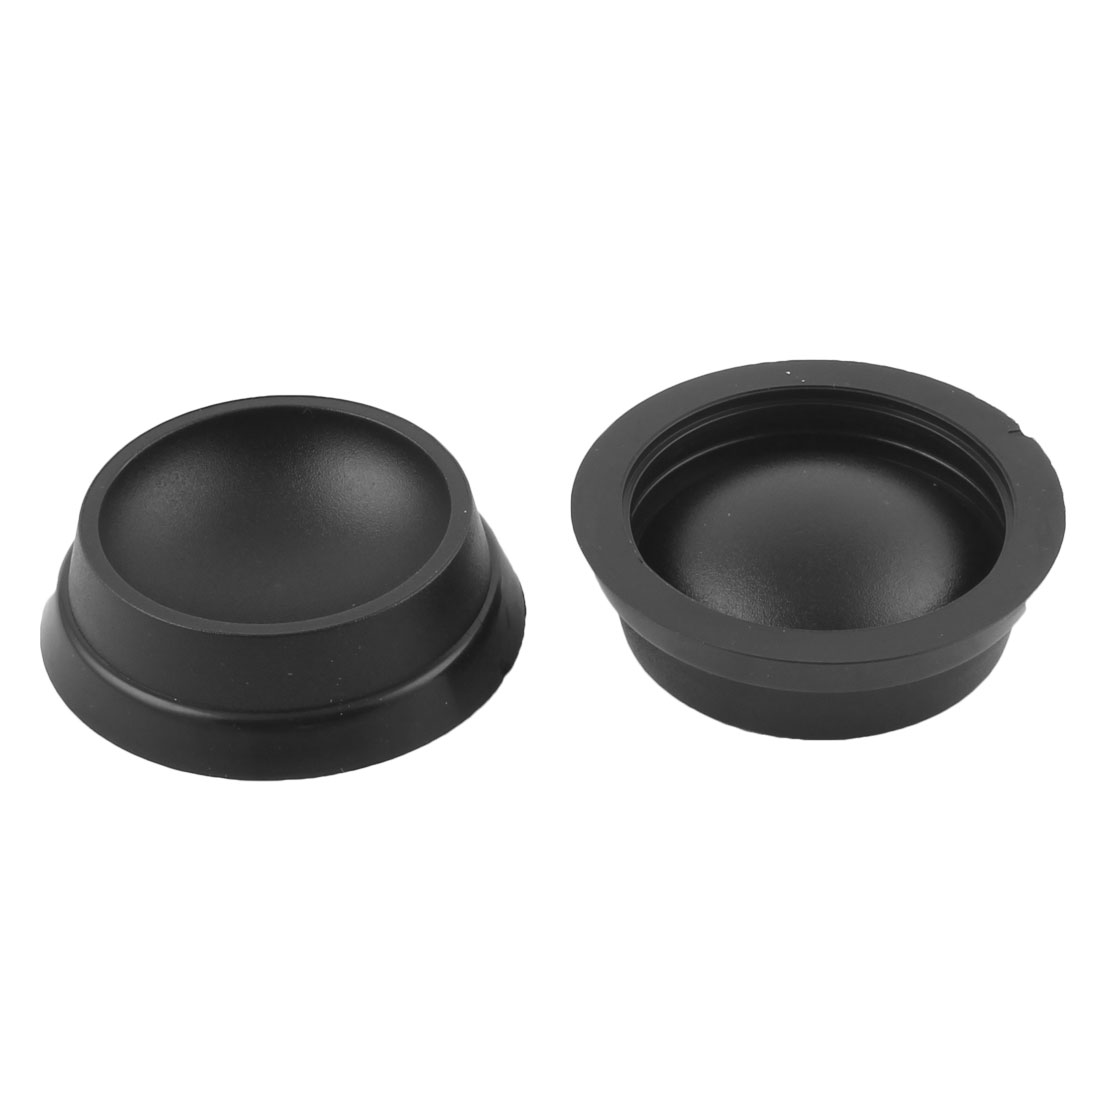 Household Furniture Bed Piano Wheels Non-slip Castor Cup Holder Black 2pcs